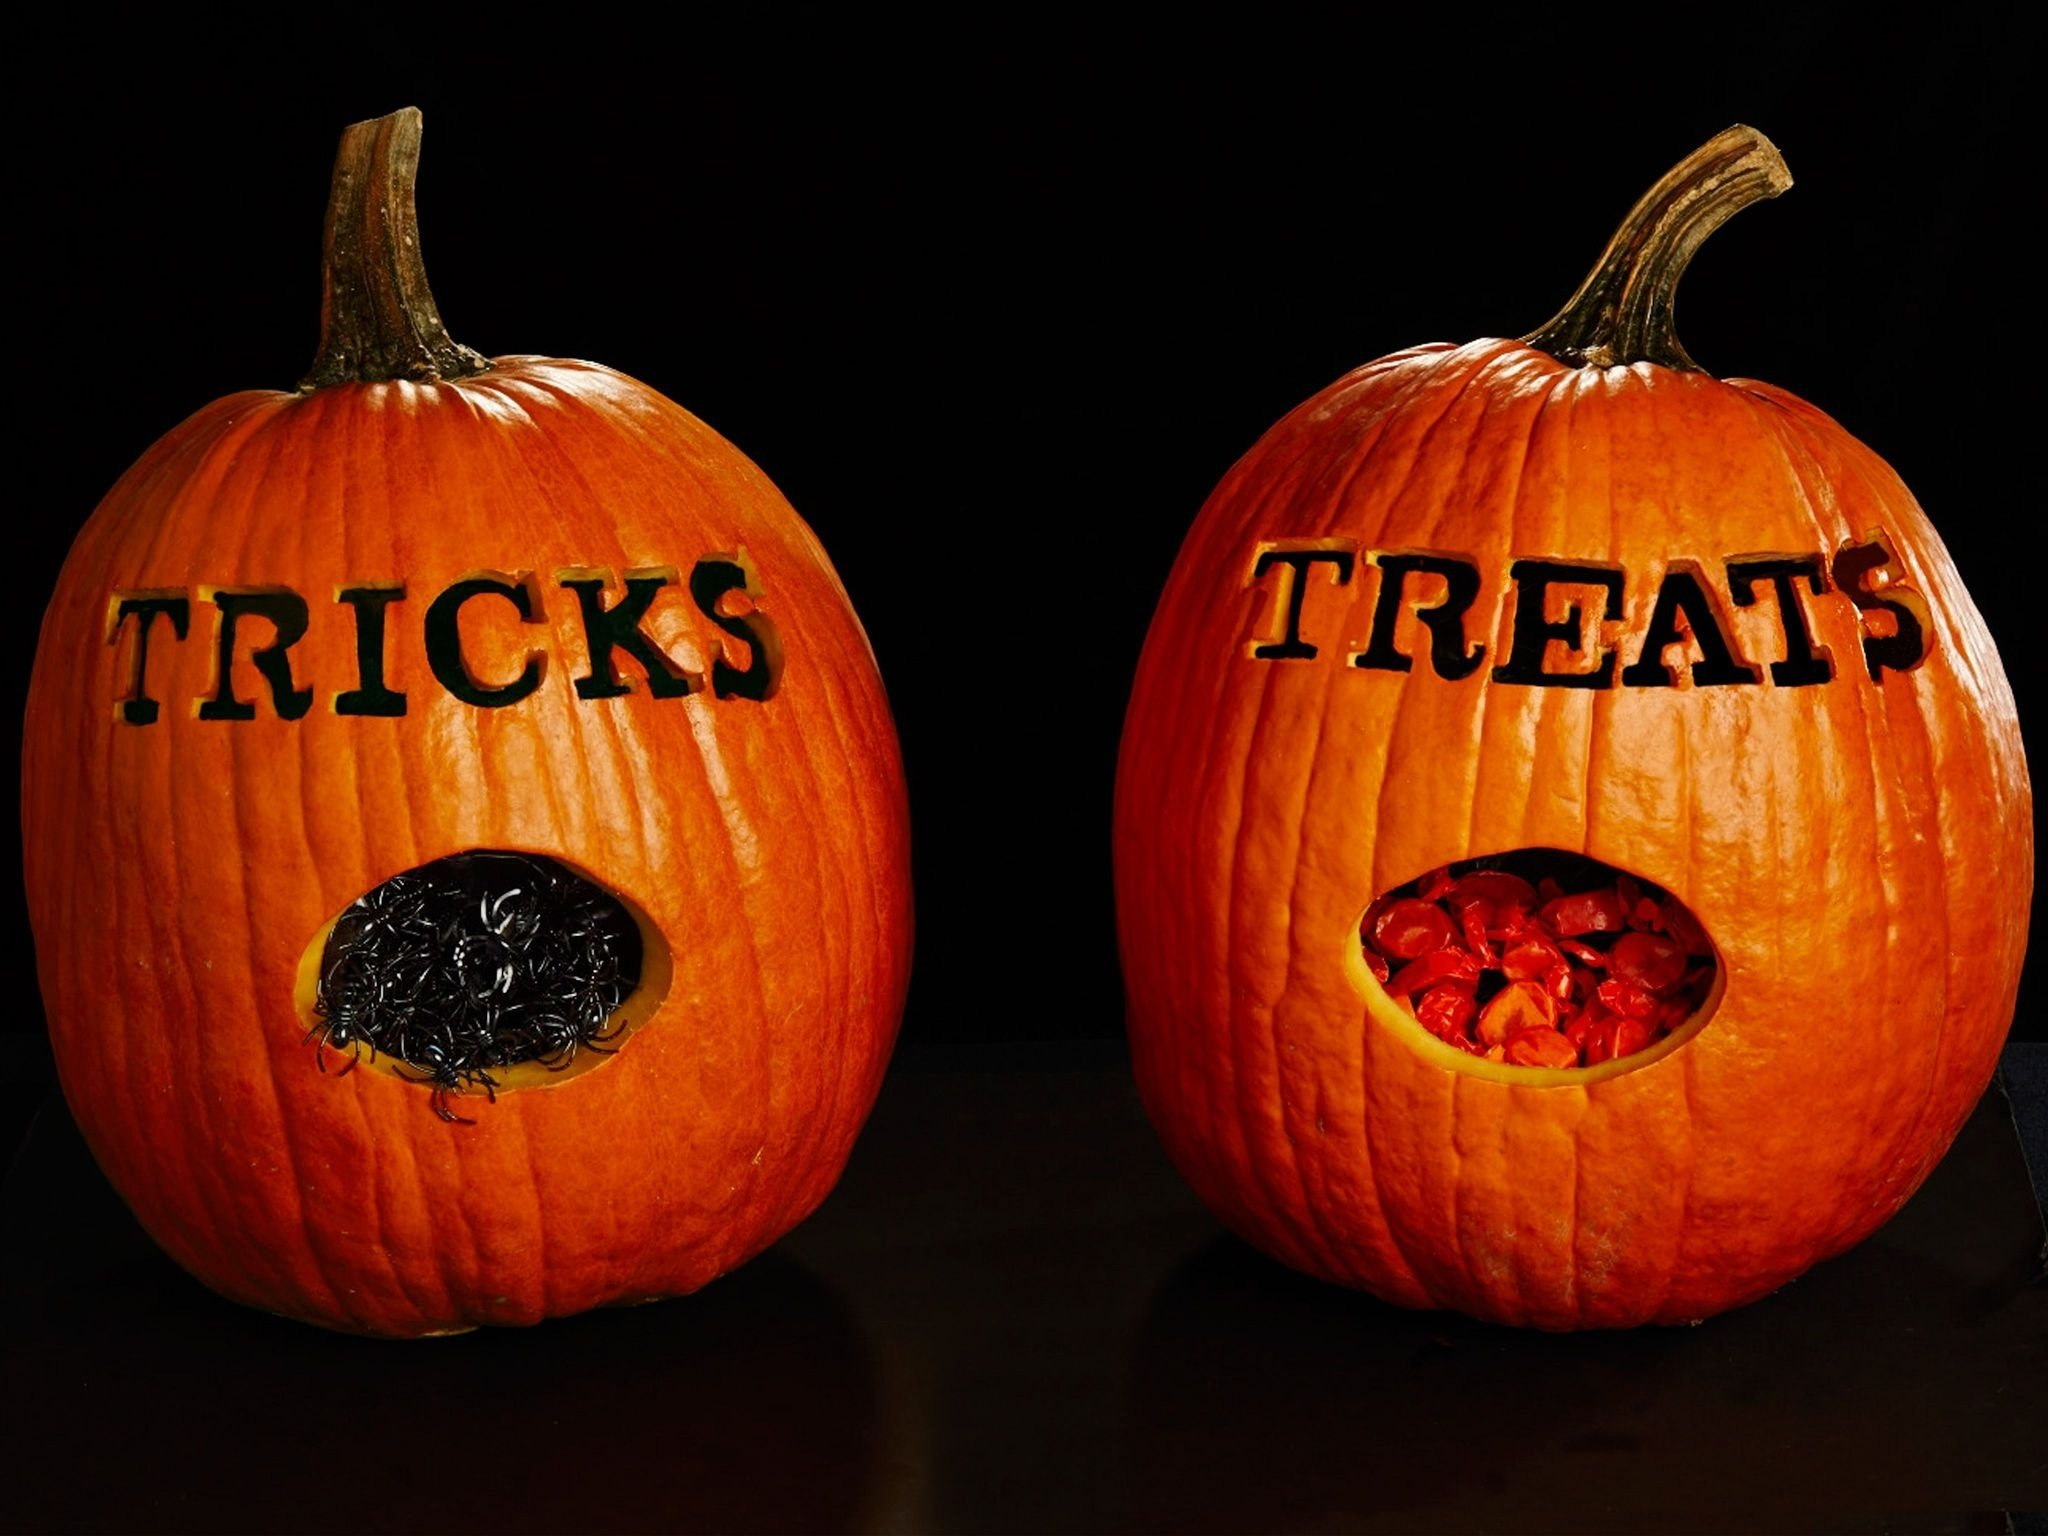 10 Most Recommended Cool Pumpkin Carving Ideas Easy the best simple easy pumpkin carving ideas on cool for halloween 11 2020